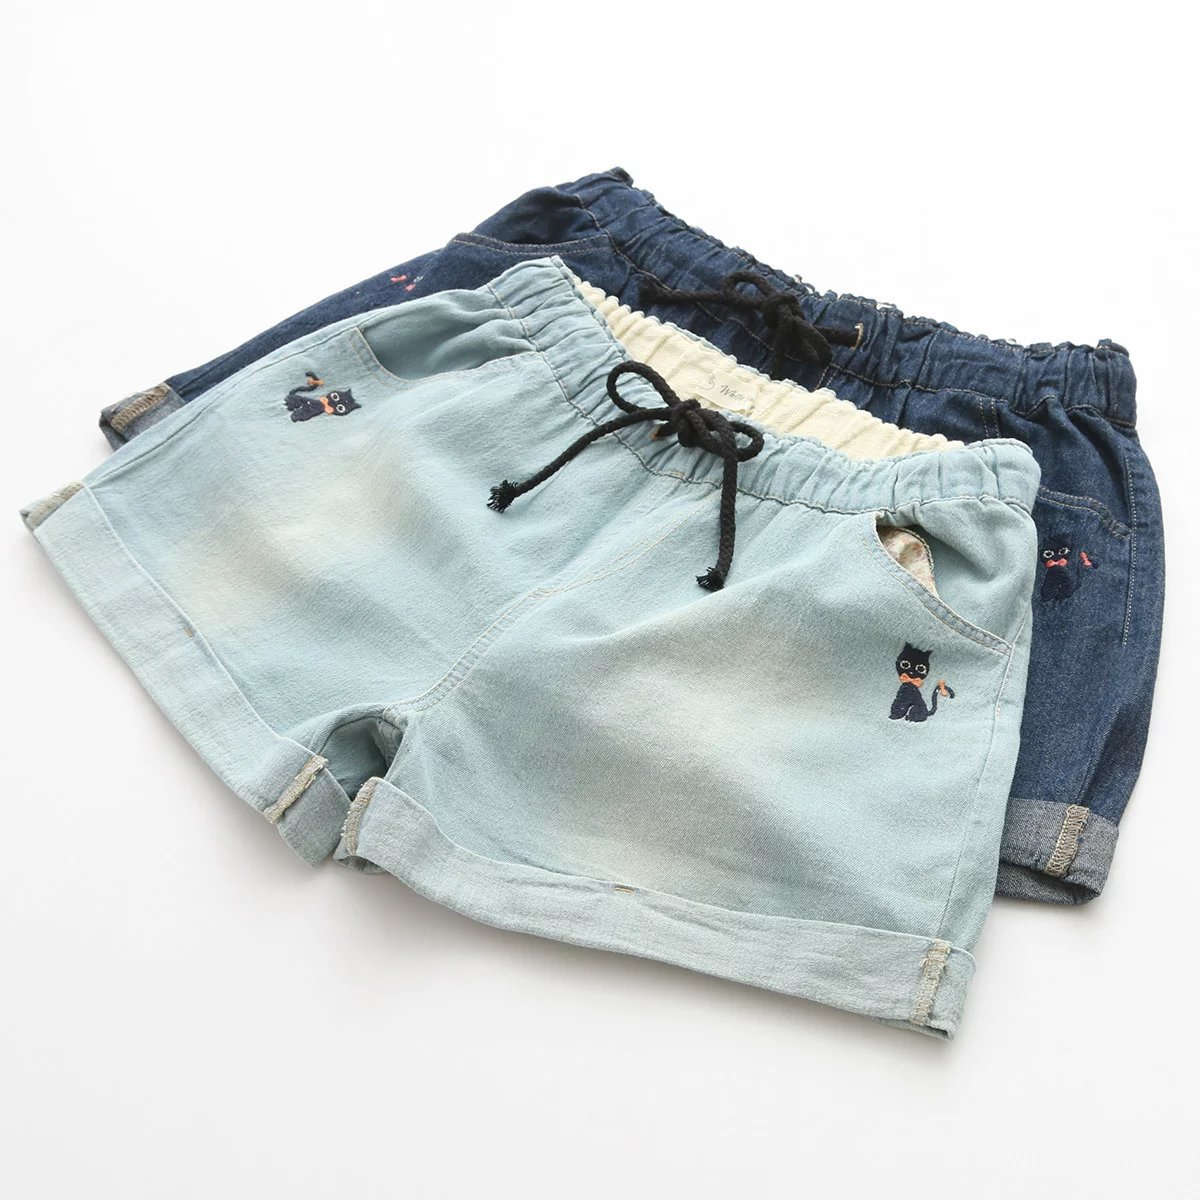 4e61ecf2801a6 2017 Summer Denim Shorts Black Cat Embroidery Elastic Drawstring Women s Short  Jeans With Pocket Casual Loose M L Plus Size-in Shorts from Women s  Clothing ...